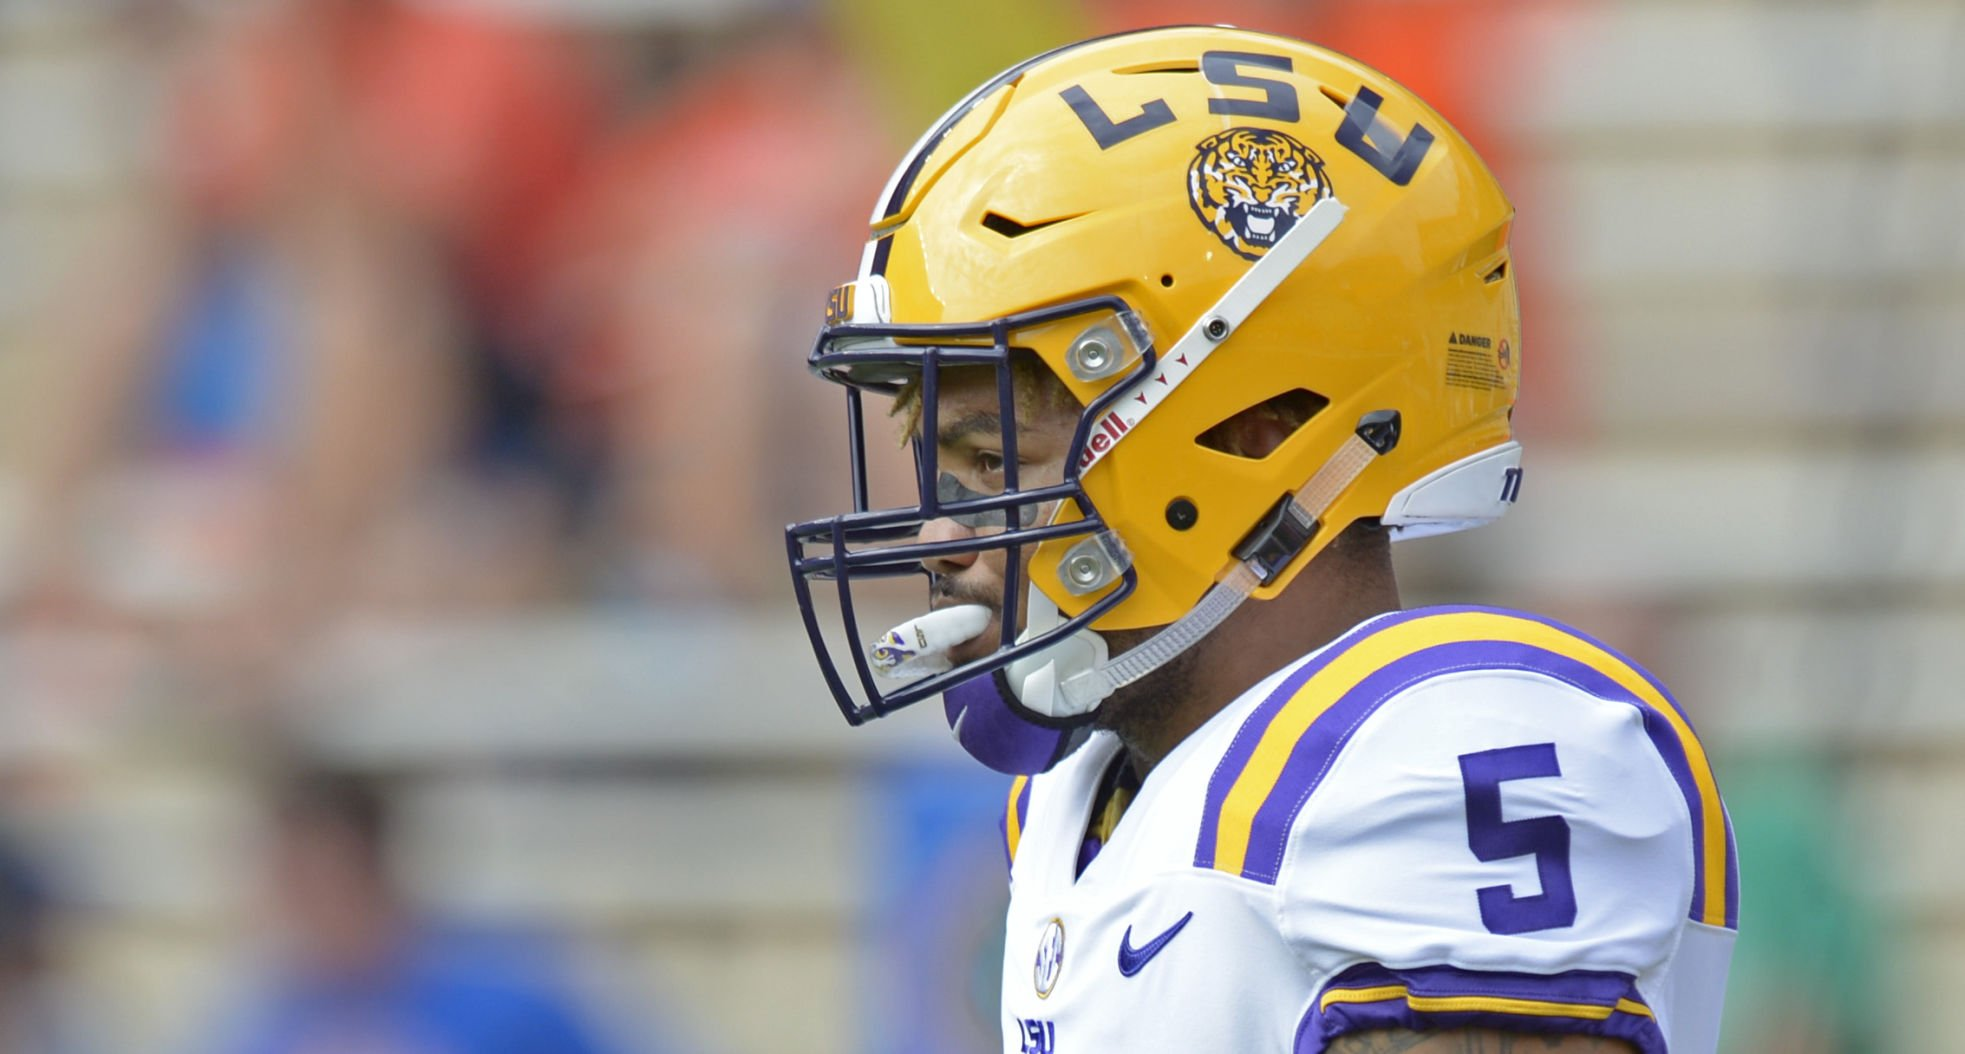 Game Preview & Betting advice - LSU at Florida(#21) - Start time 8:30pm